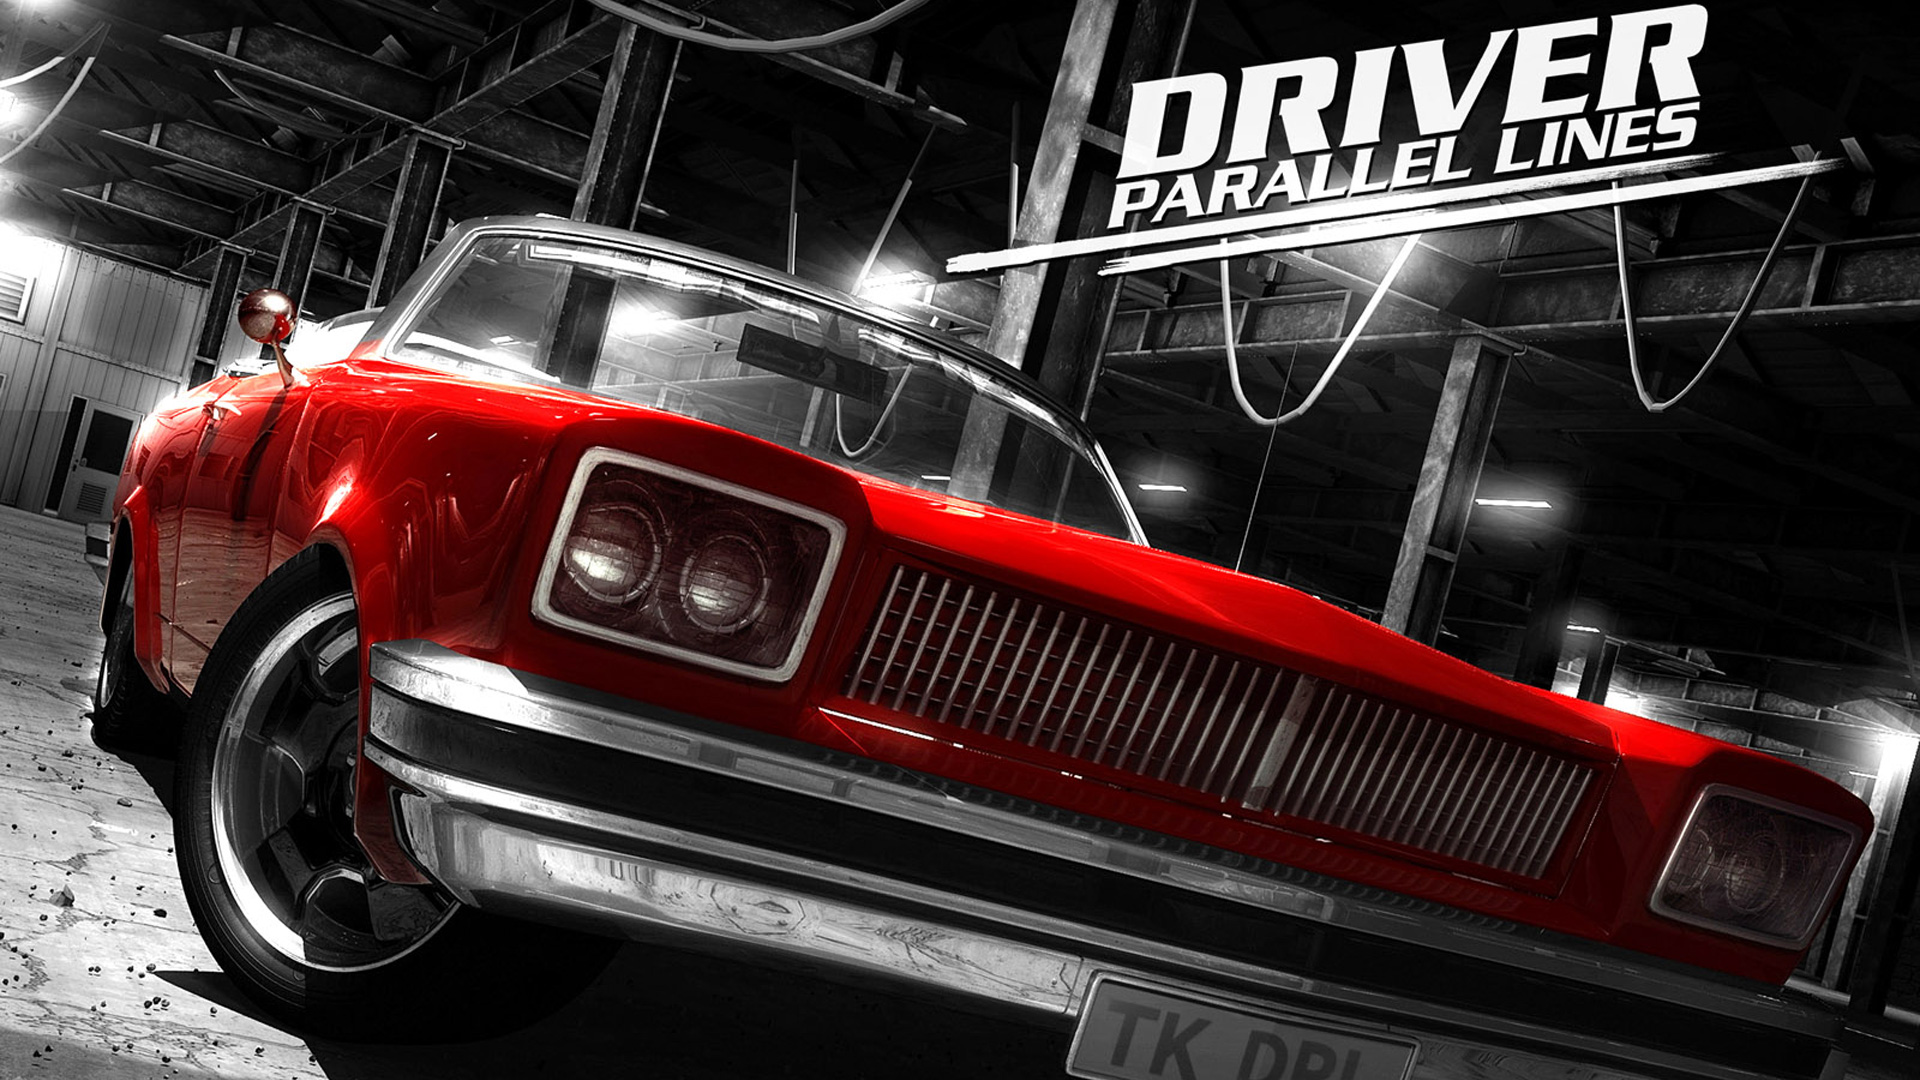 Driver Parallel Lines wallpaper 6